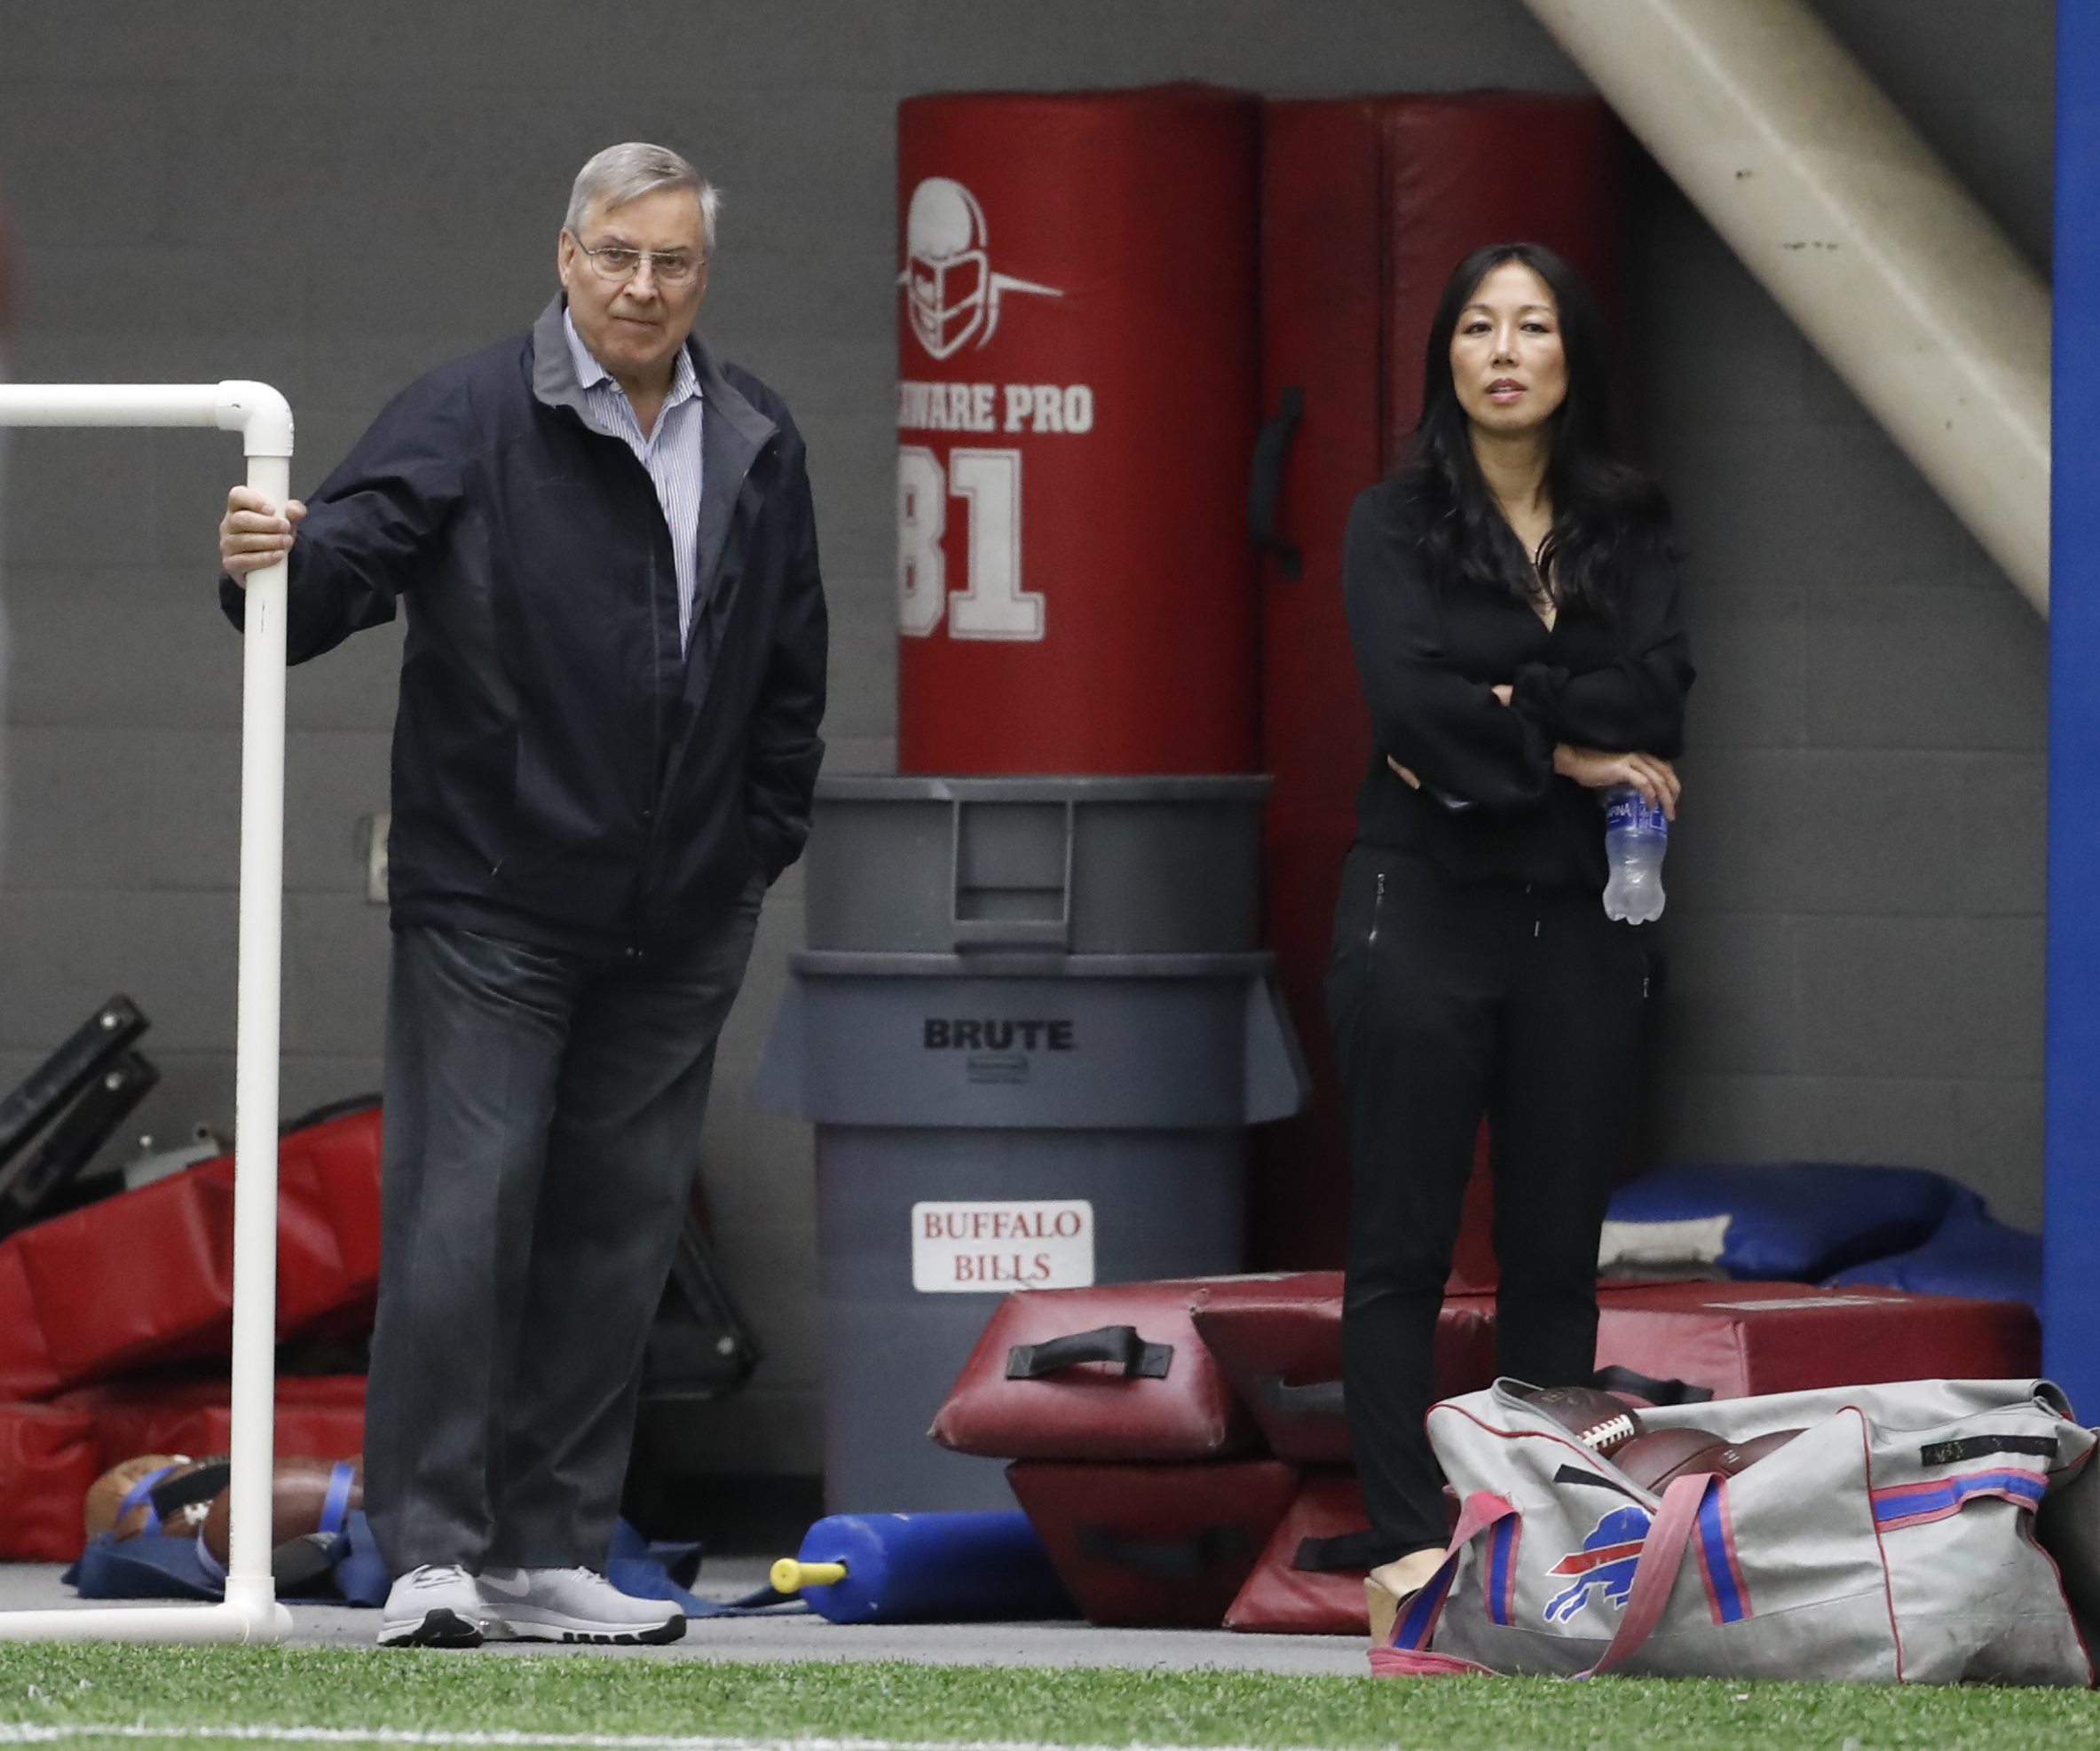 On a tumultuous day in Buffalo sports, Terry and Kim Pegula watched the Bills practice. (Harry Scull Jr./Buffalo News)